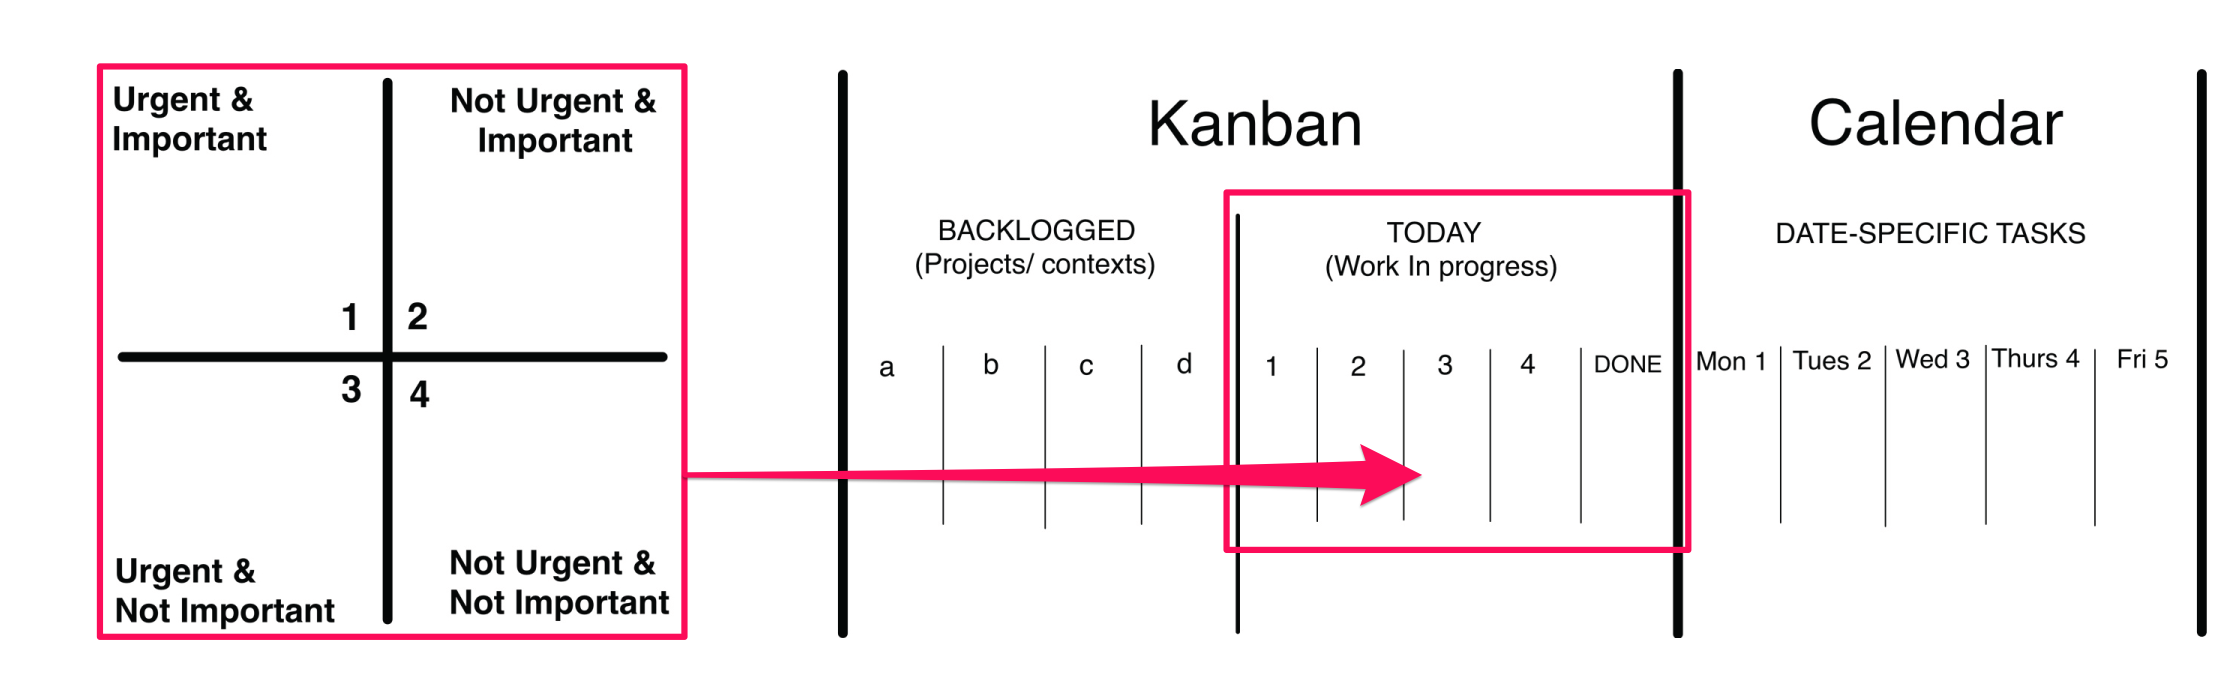 Urgent and Important Matrix/ Eisenhower Matrix/ Covey Quadrant - repurposed into a linear Kanban structure